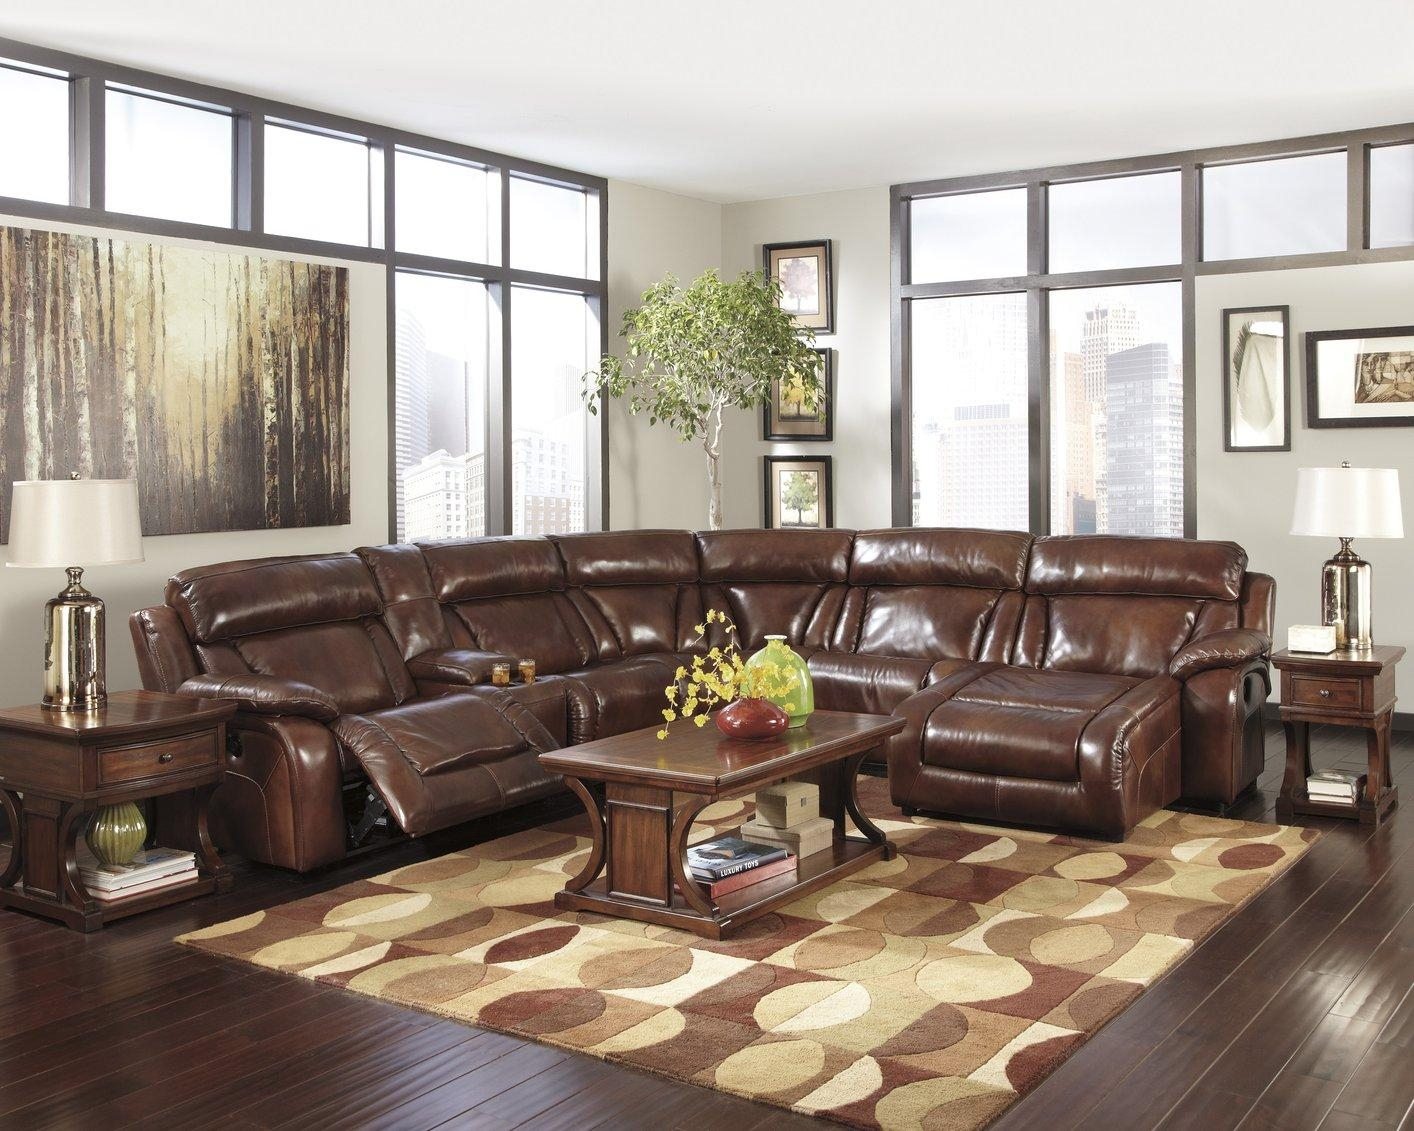 Sectional Sofa Clearance: The Best Way To Get High Quality Sofa In Pertaining To High End Leather Sectionals (View 11 of 20)